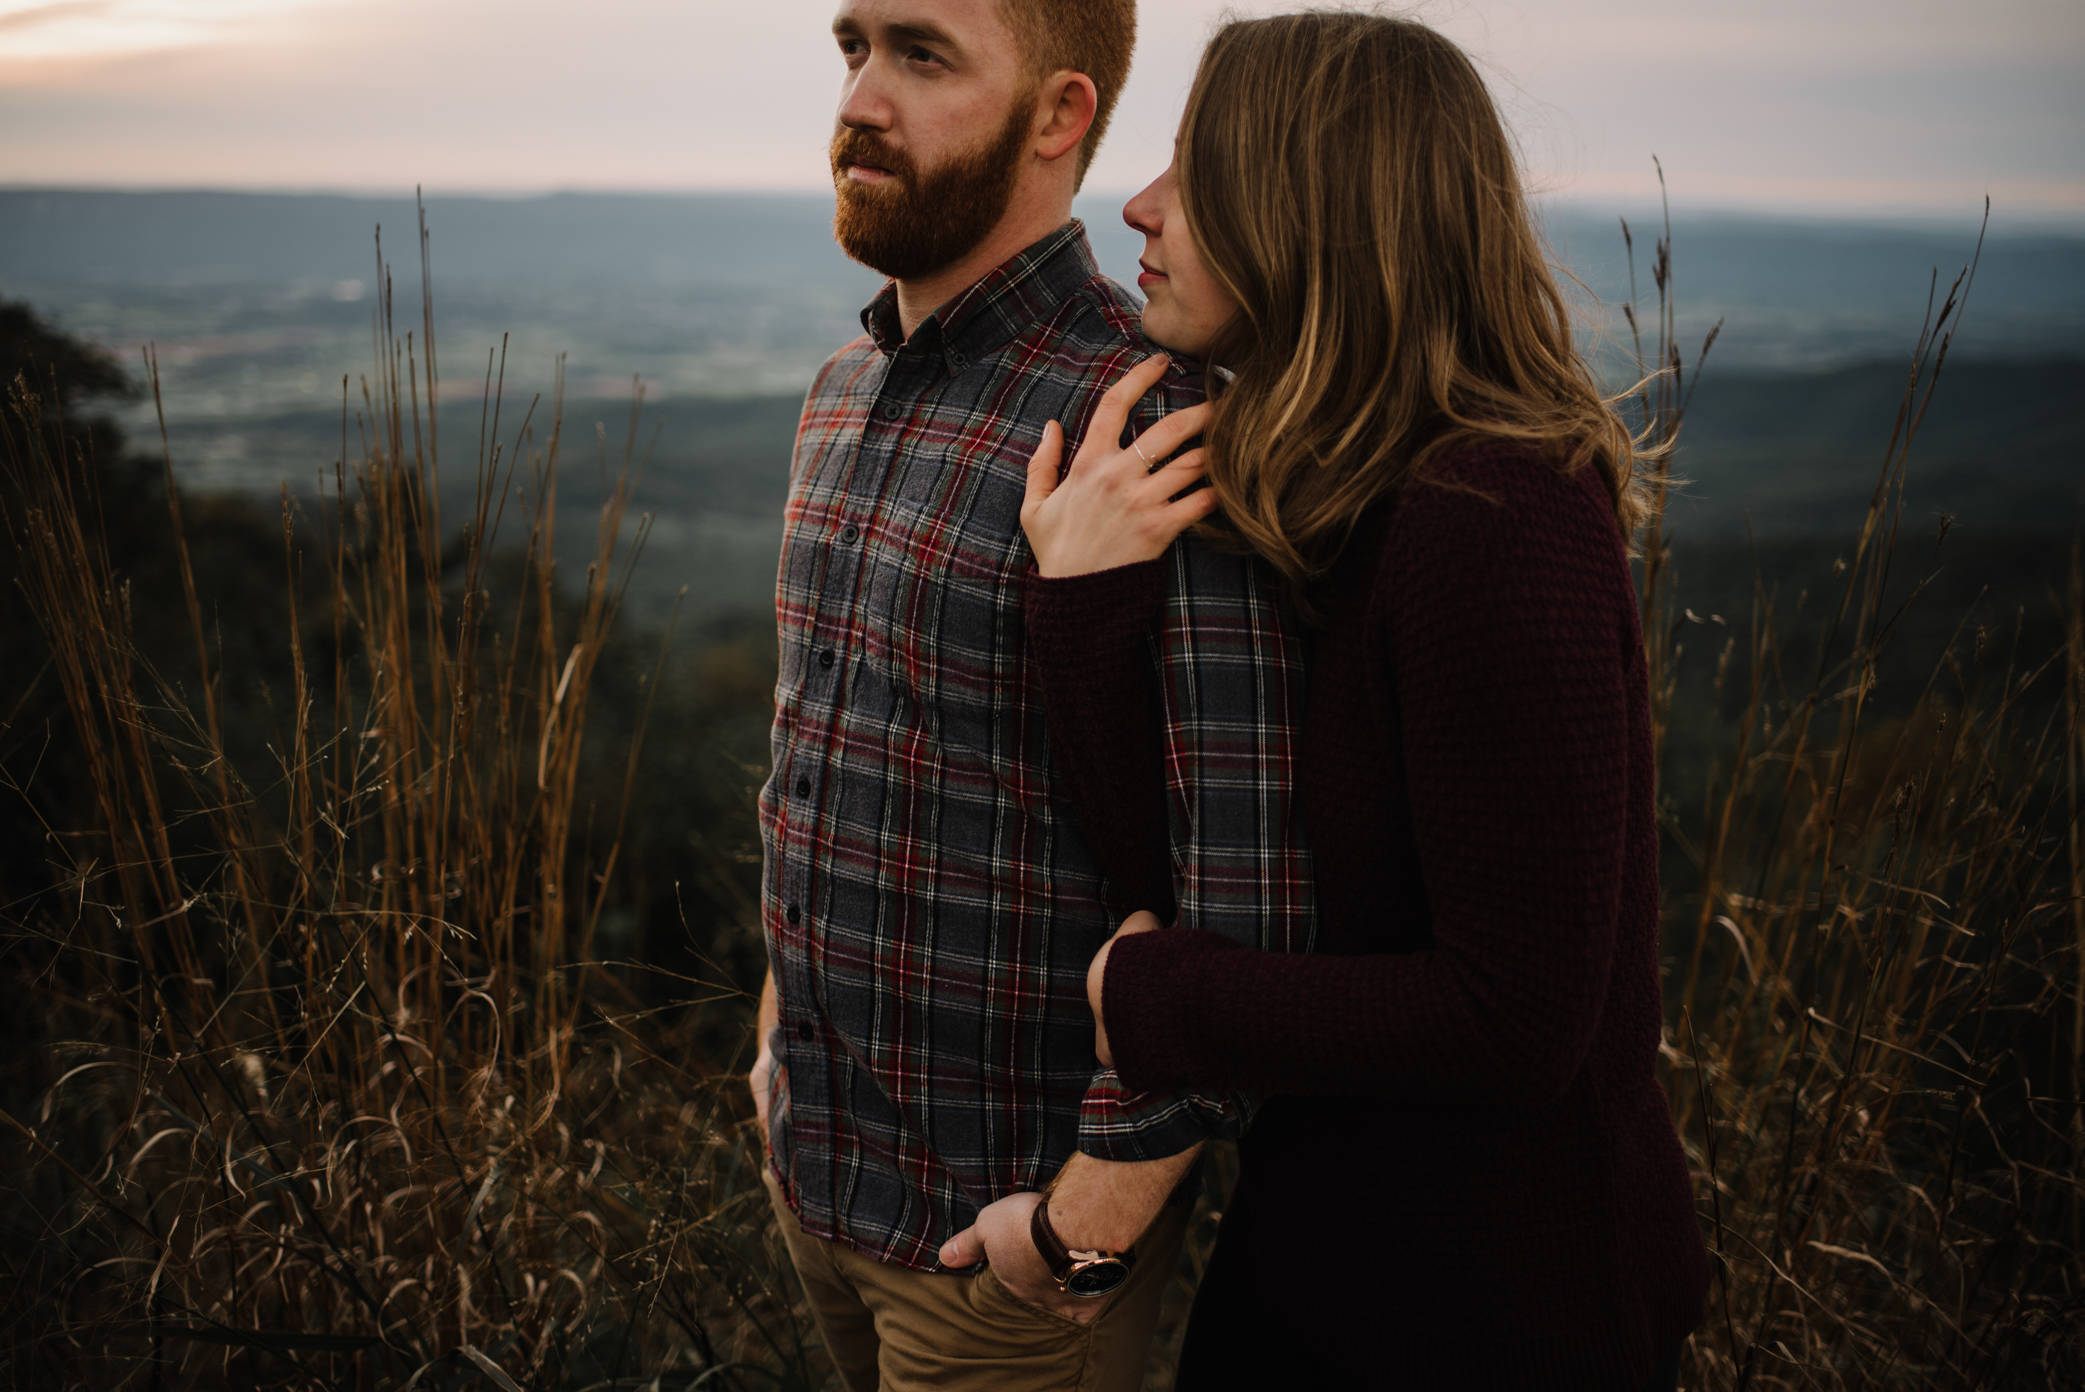 Molly and Zach Engagement Session - Fall Autumn Sunset Couple Adventure Session - Shenandoah National Park - Blue Ridge Parkway Skyline Drive - White Sails Creative_40.JPG